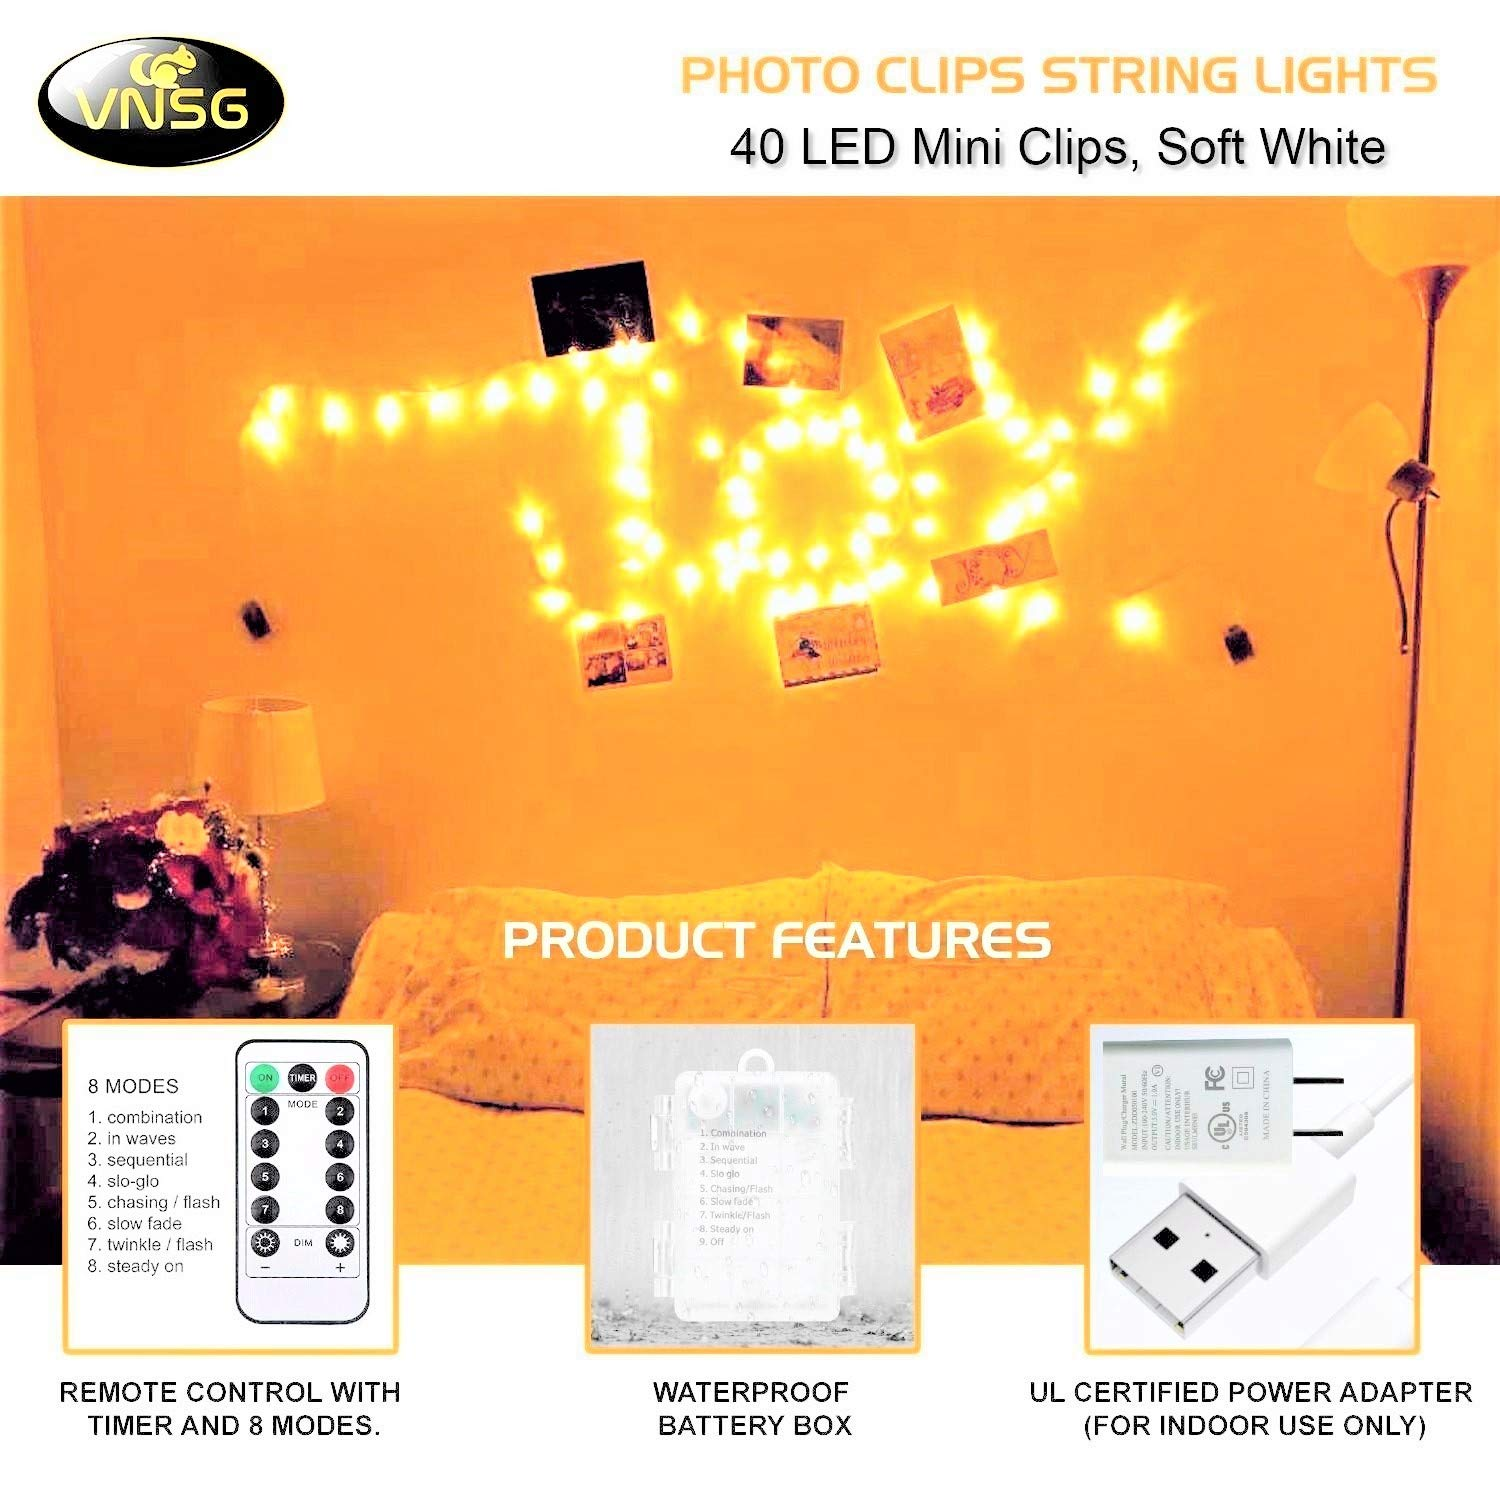 VNSG 40 LED Photo Clip String Lights for Bedroom Wall Decor┃Battery or Adapter┃Fairy Lights to Hang Pictures Christmas Cards, Wedding Photos┃20ft Soft White┃Photo Lights with Clips for Picture Hanging